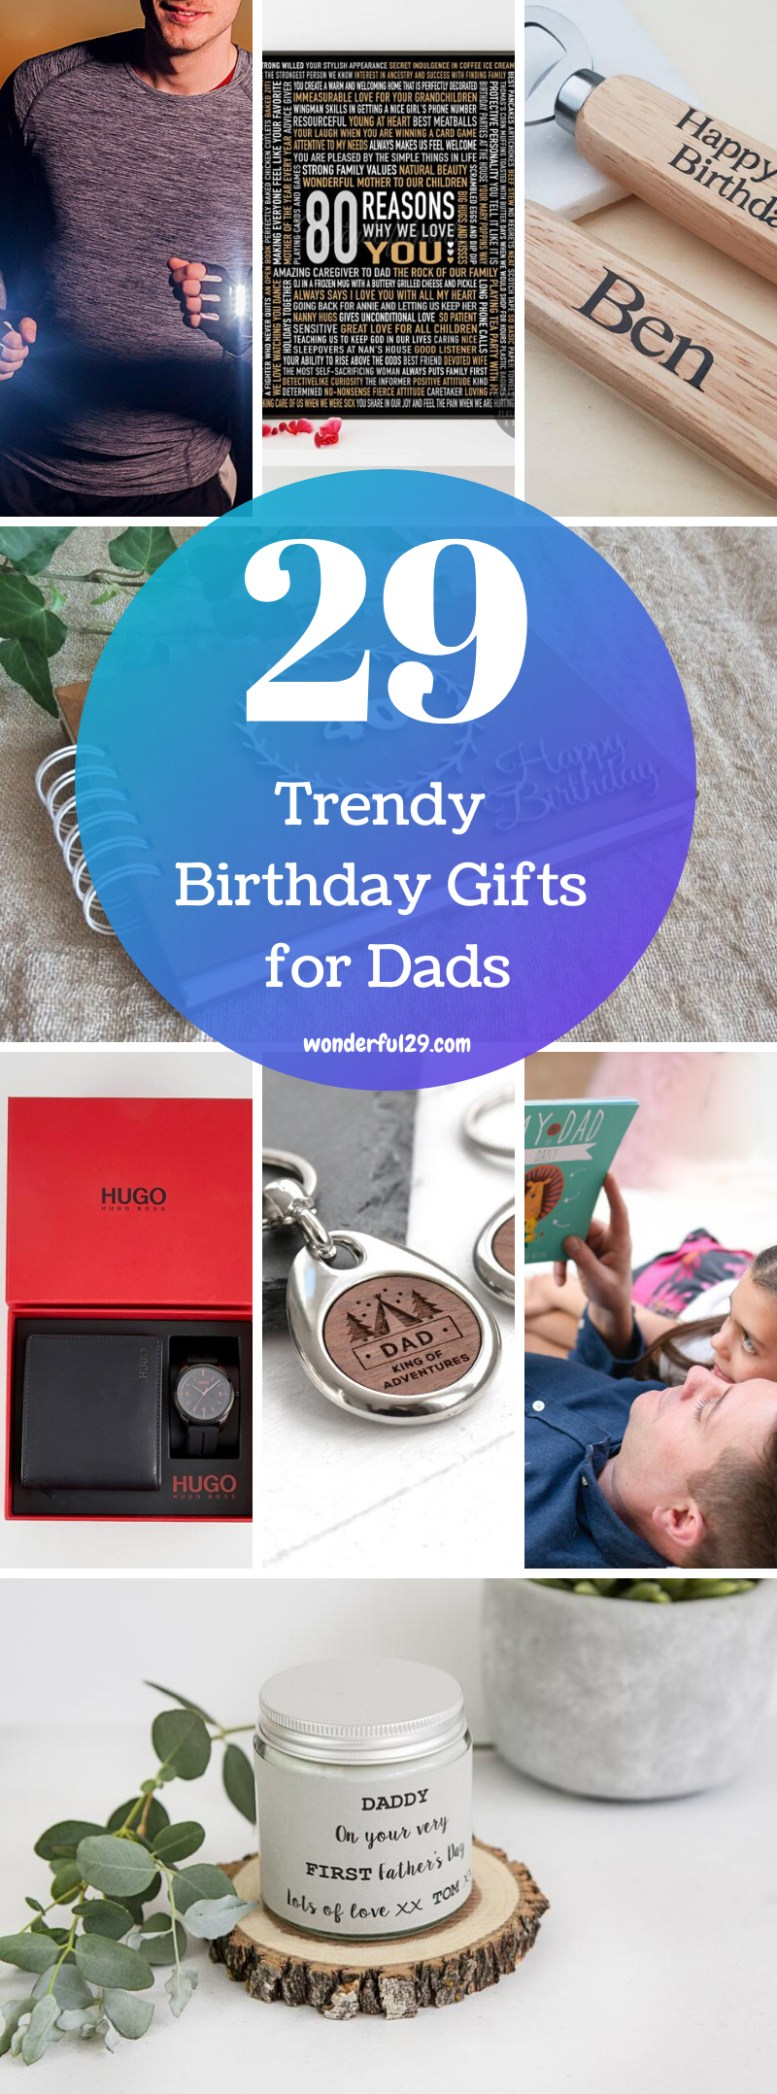 Birthday Gifts for Dad